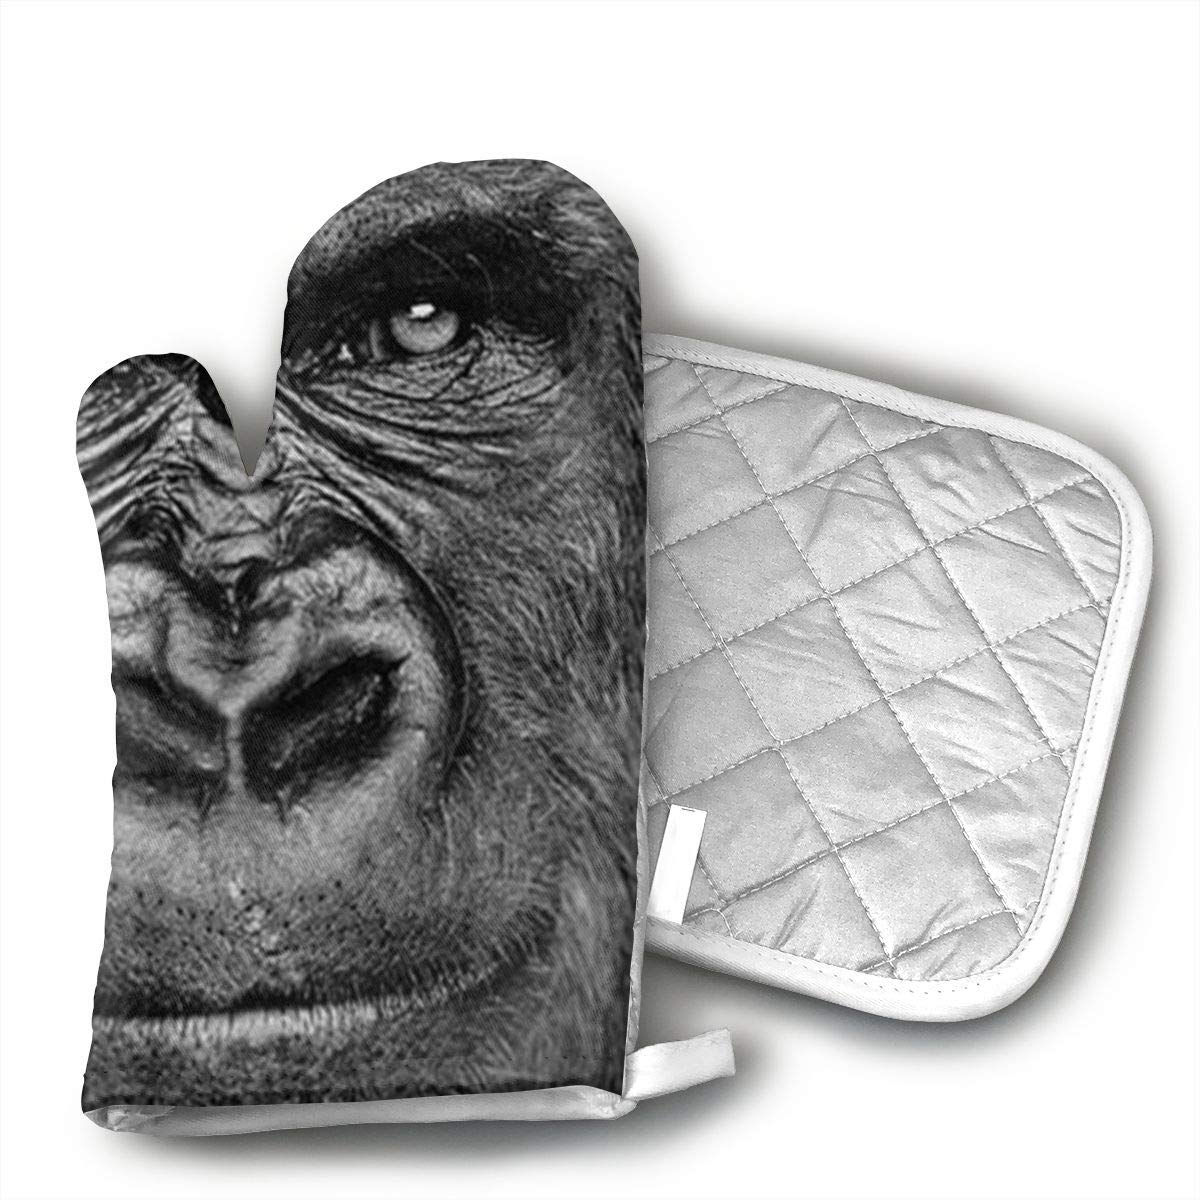 AOAOAO Gorilla Art Print Cookware and Oven Gloves 2 Pieces Durable for Cooking, Baking, Grilling